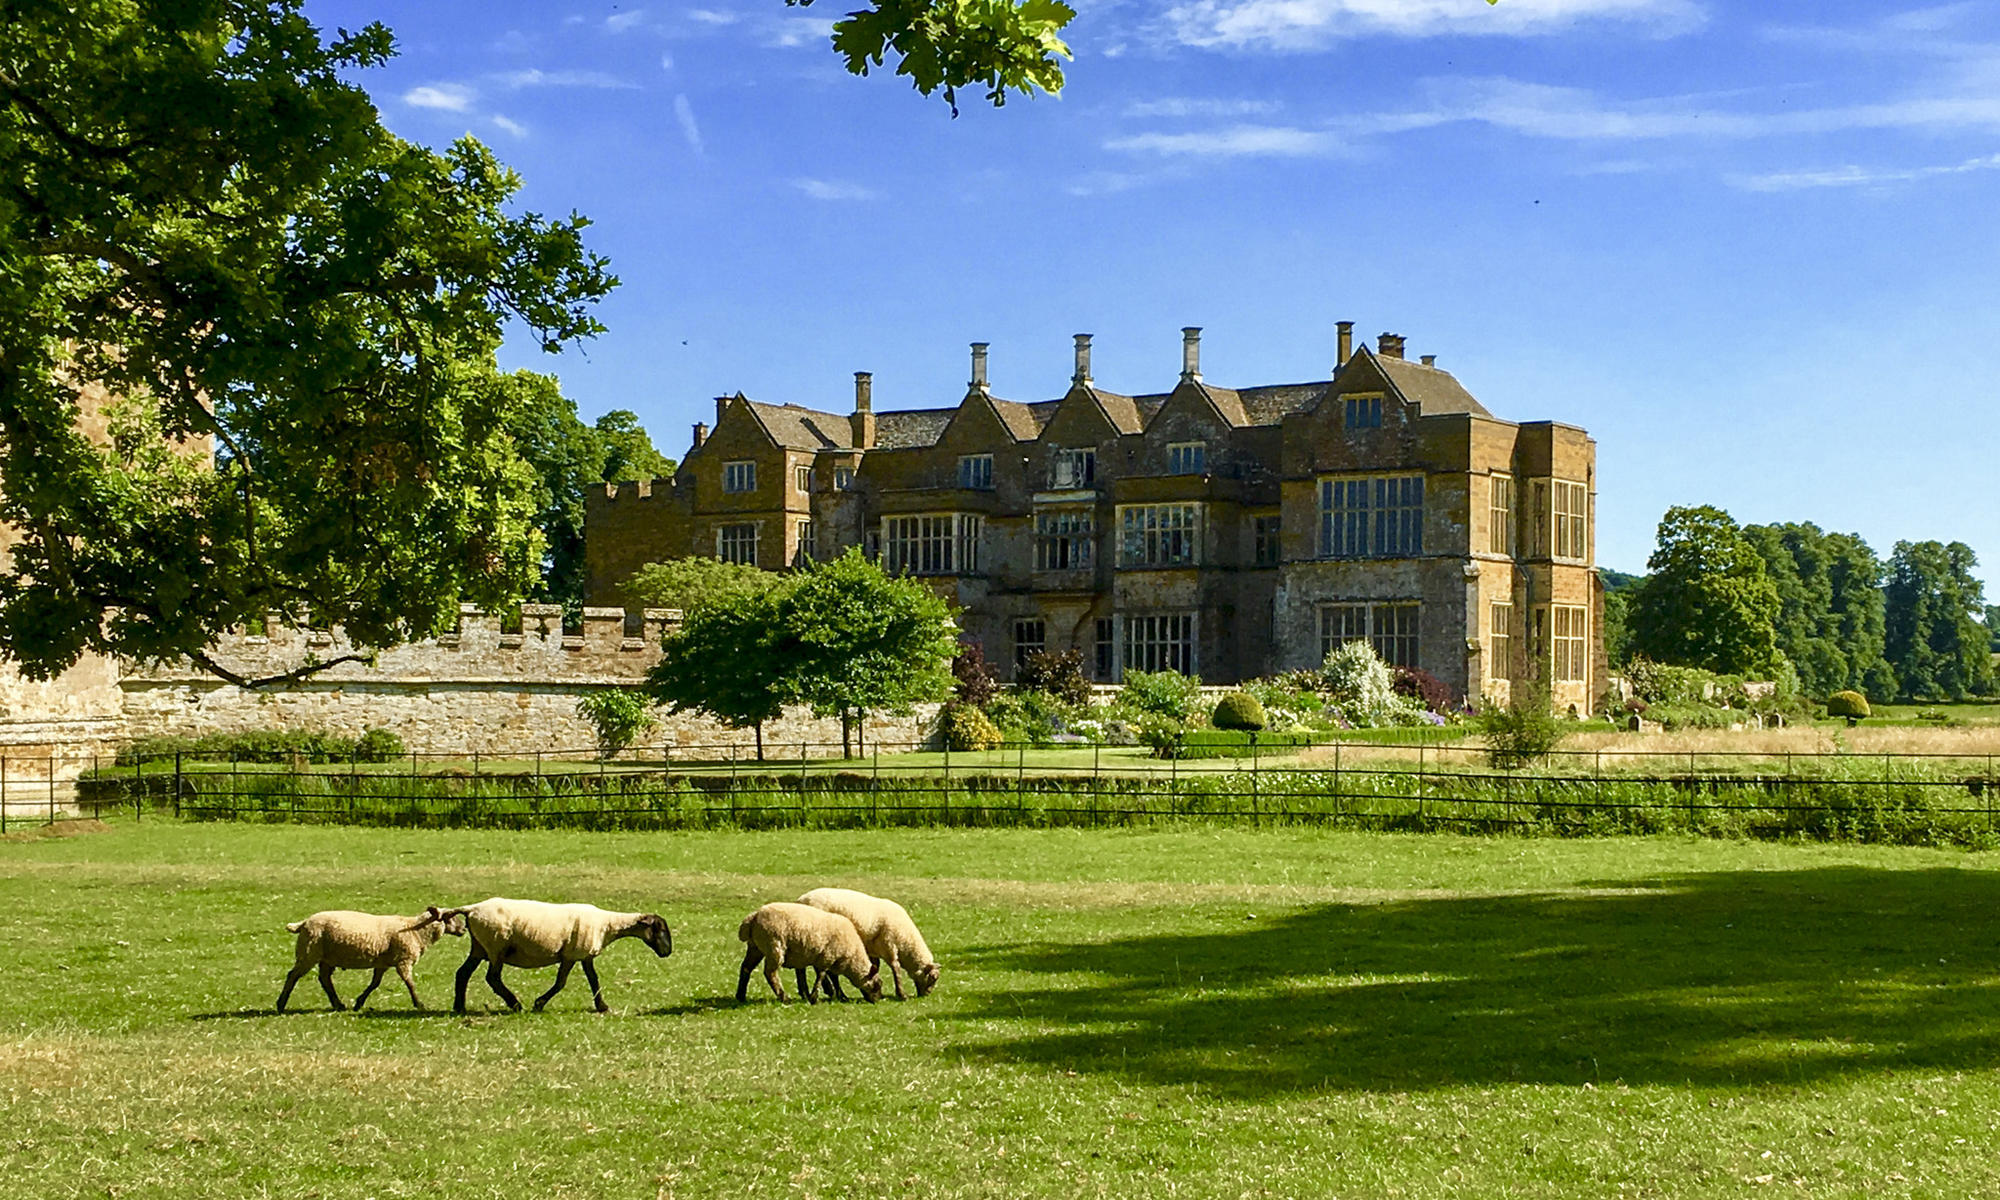 Broughton Castle is part of an 1800-acre estate of farmland and pastures. Visitors' fees play an important role in the upkeep of the castle.